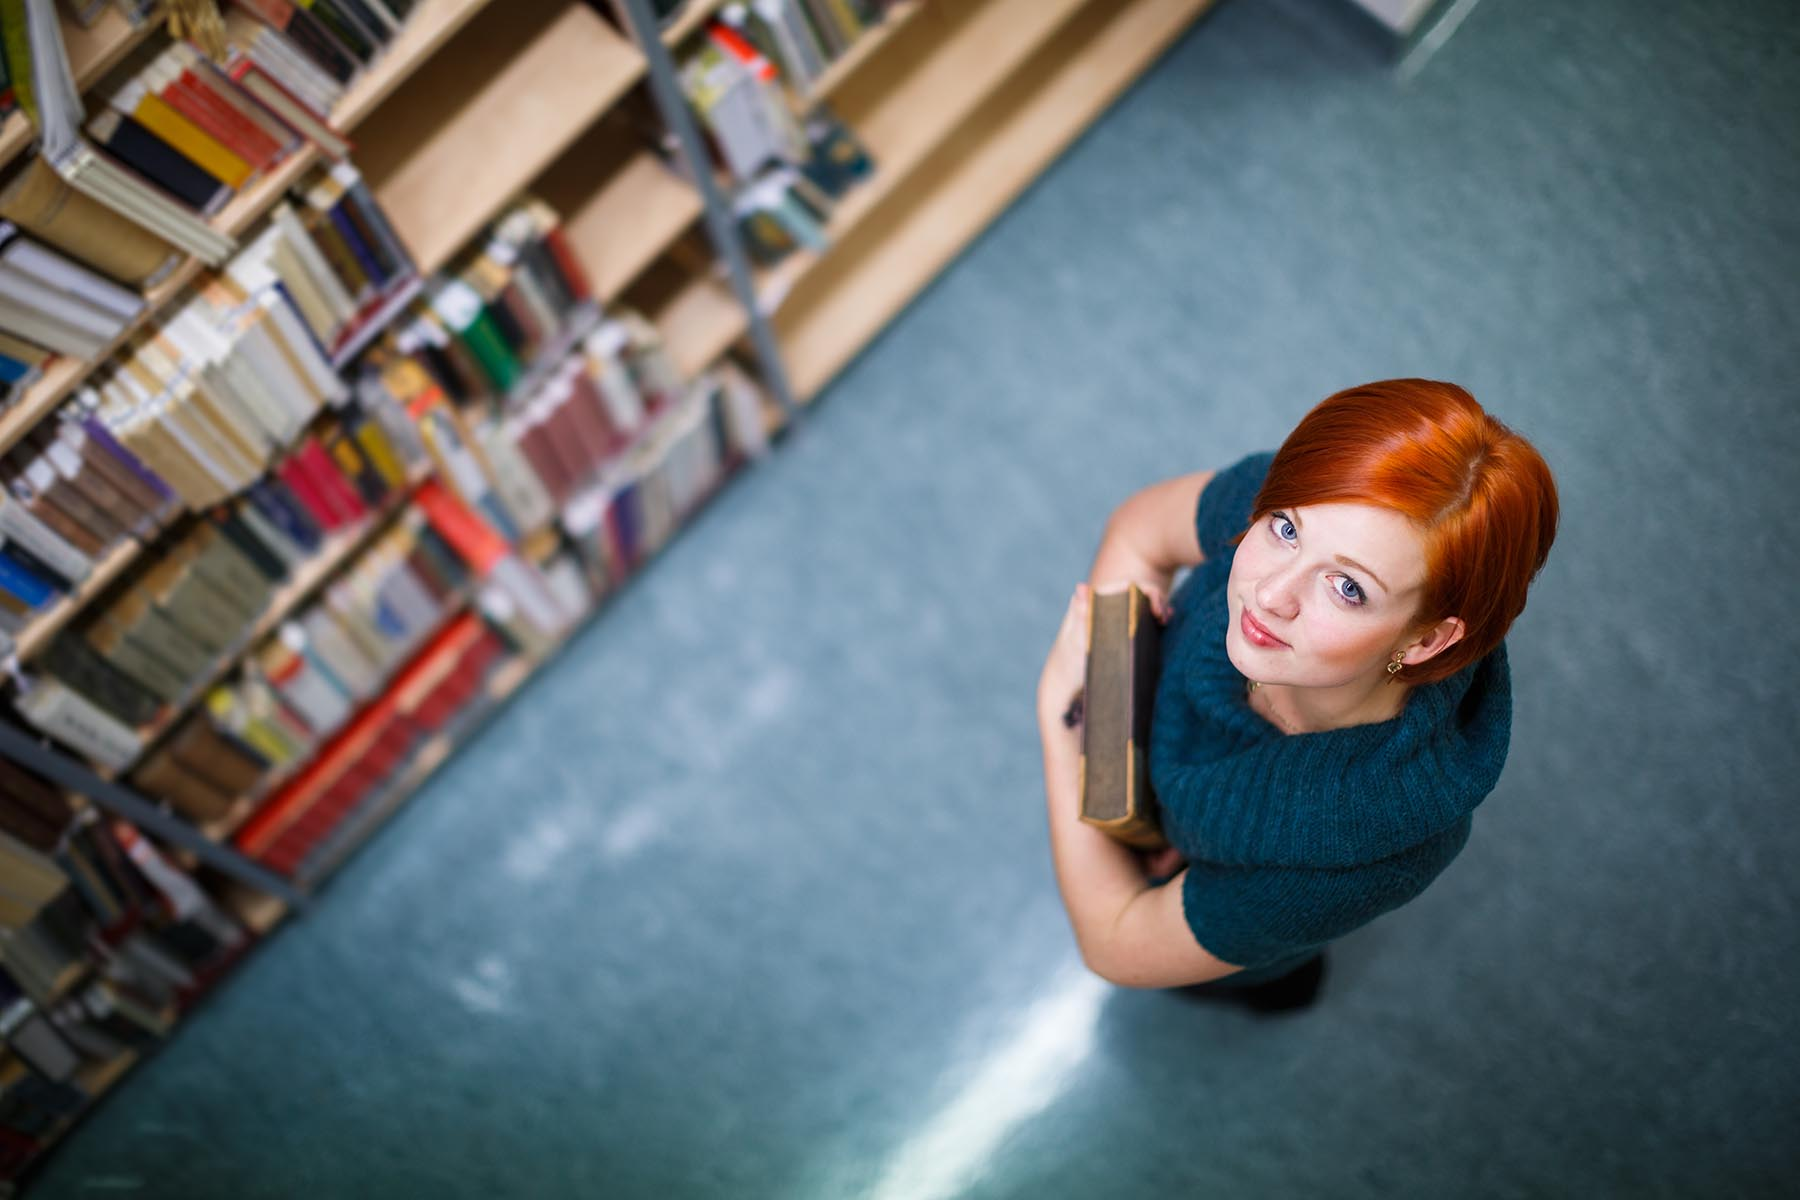 Pretty, Female College Student In A Library, Looking For A Book